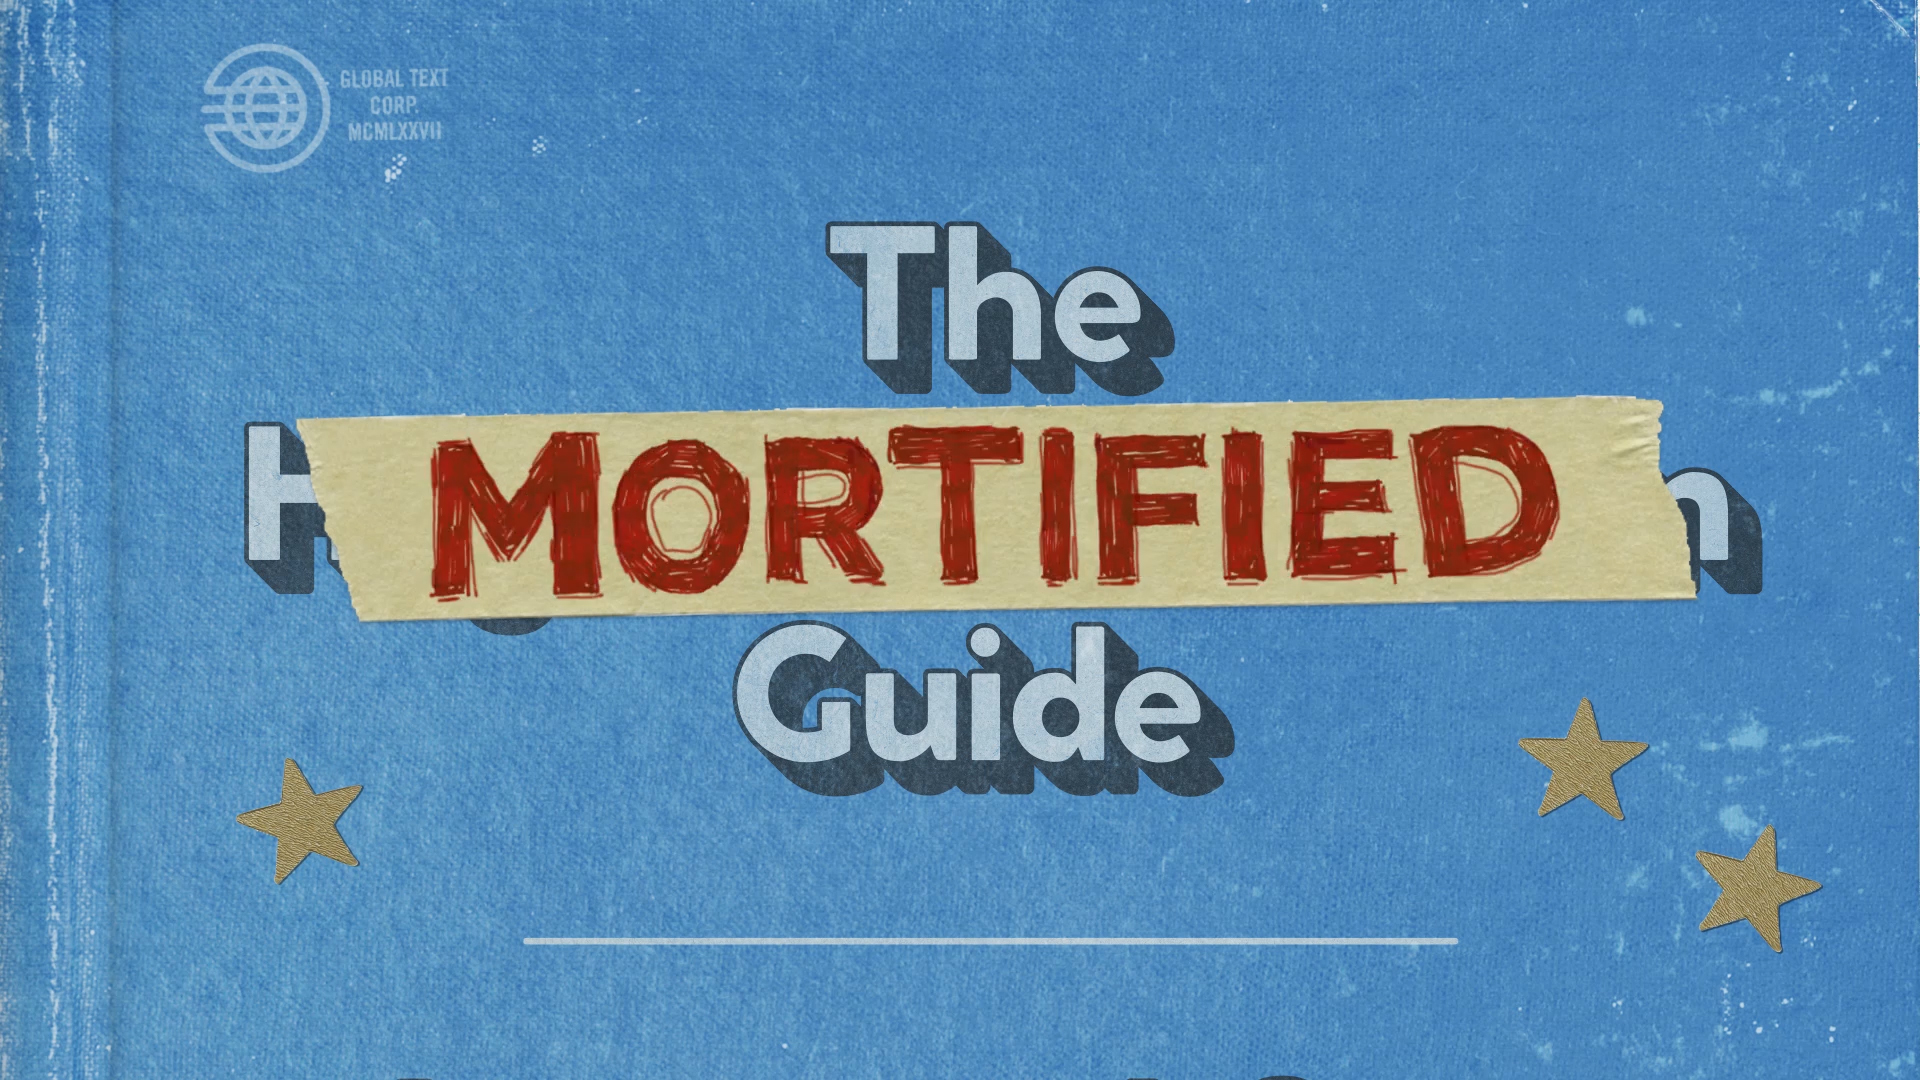 TheMortifiedGuide